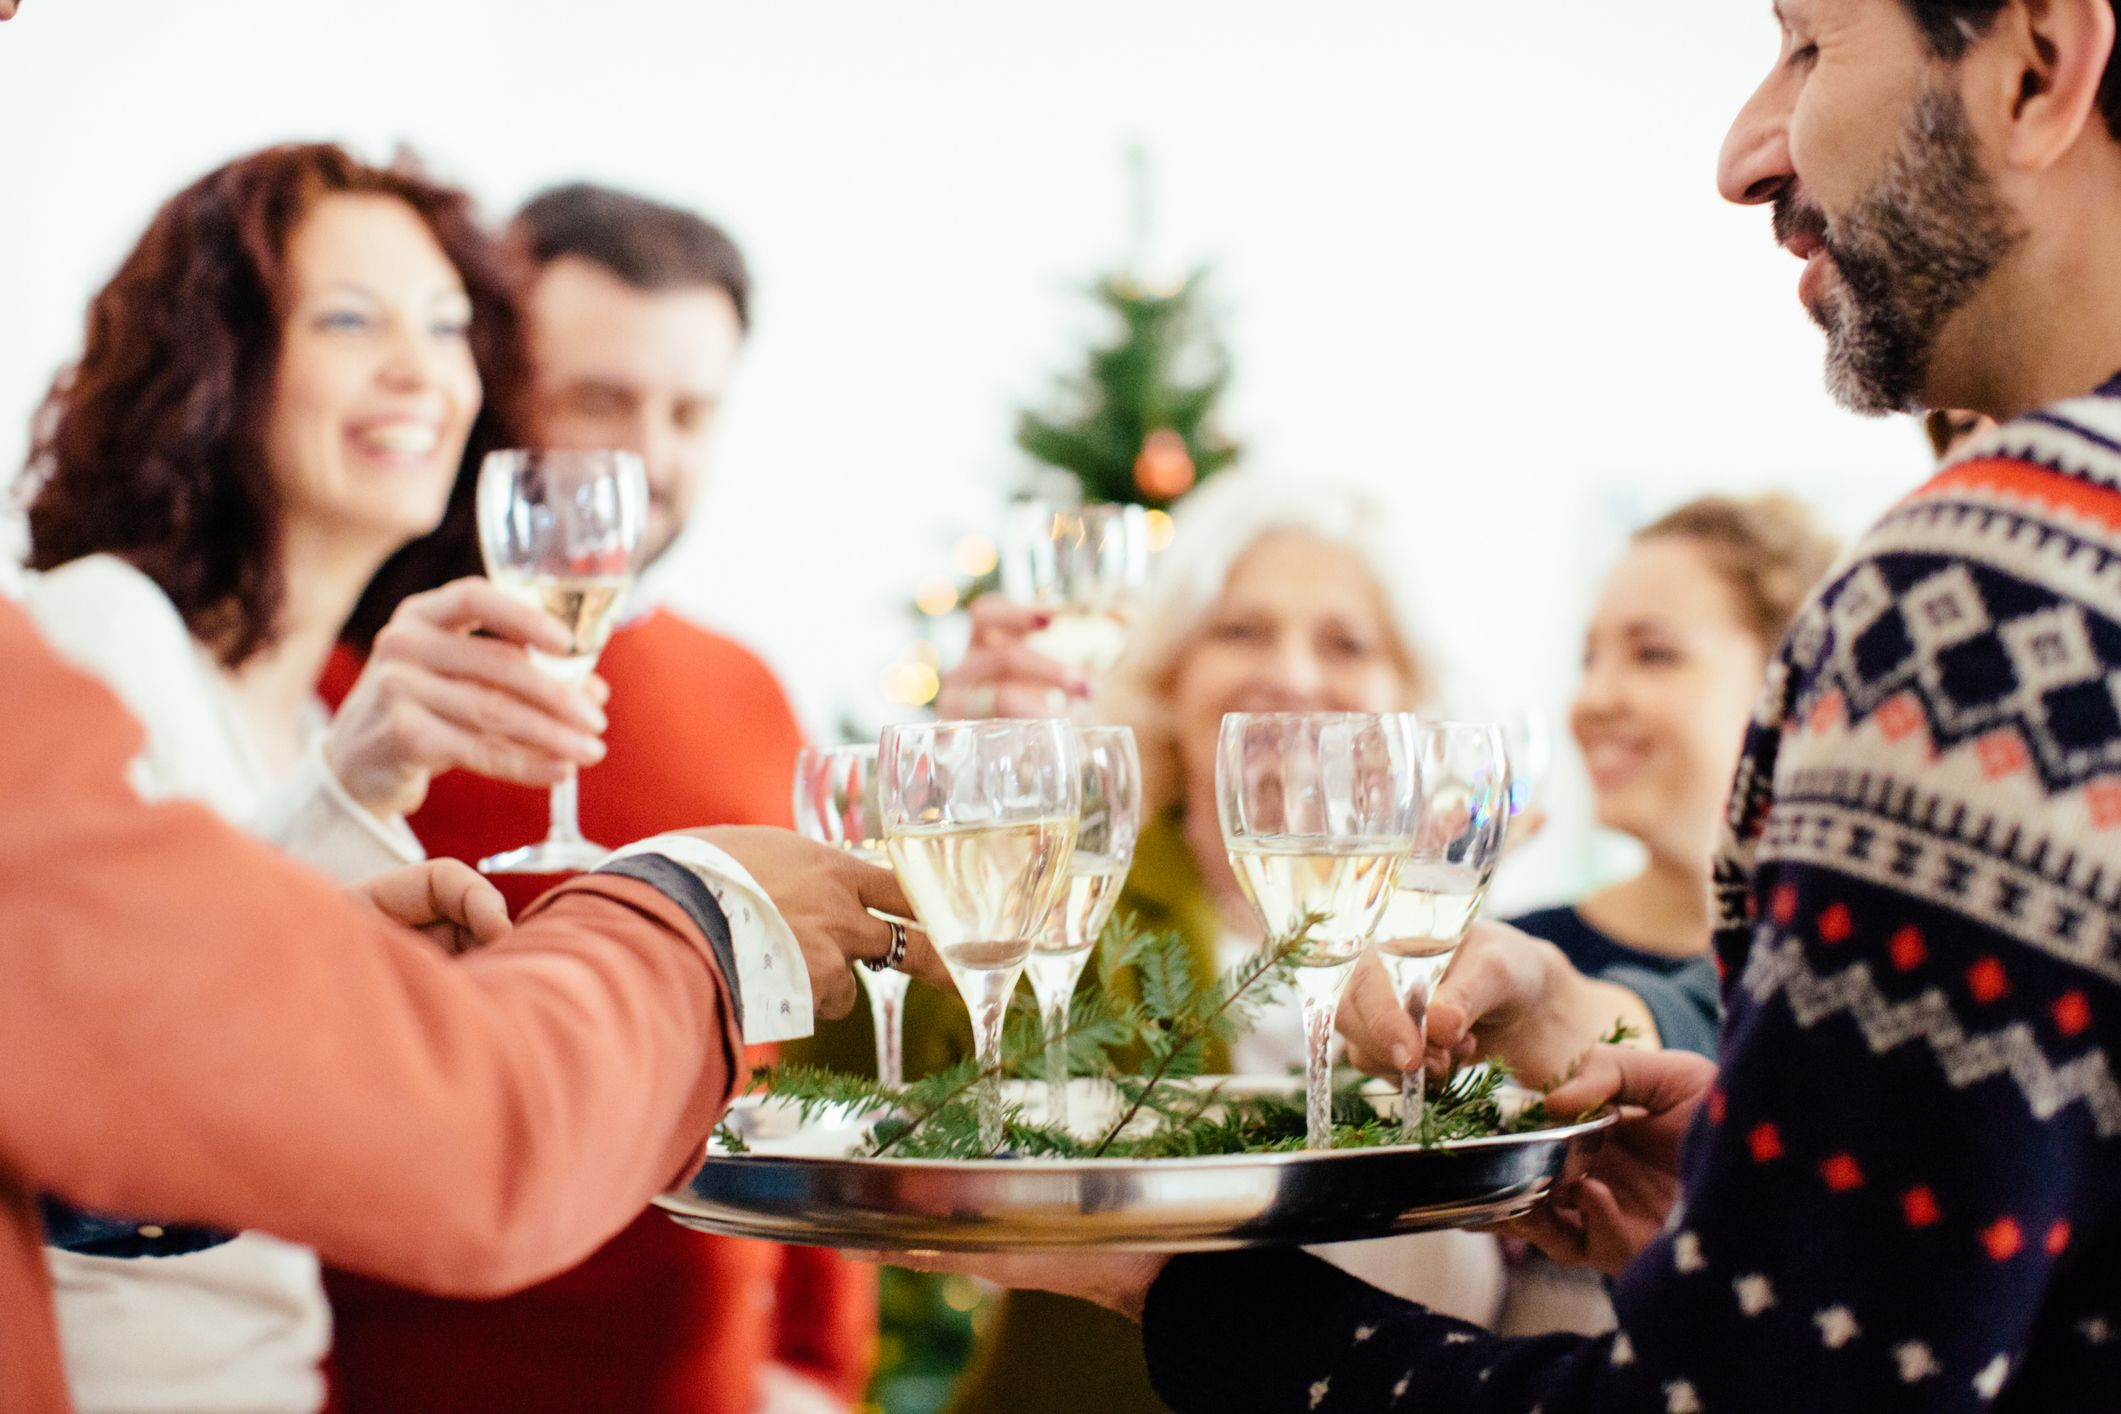 15 Best Christmas Games for Adults to Keep the Party Going